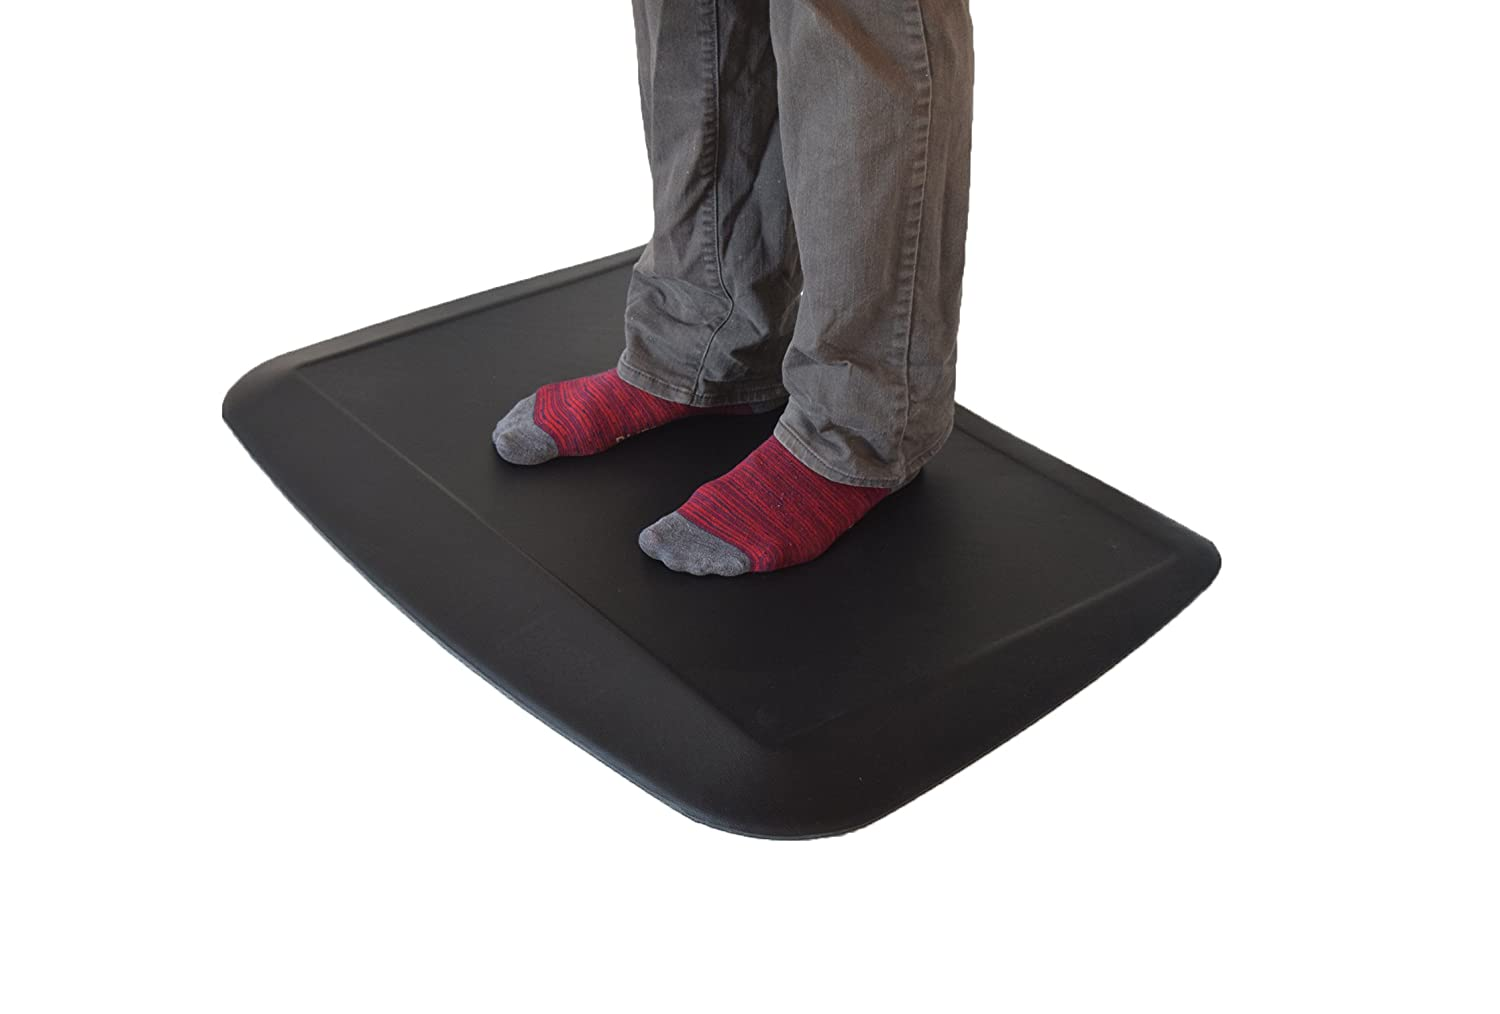 bestselling supplier mat first featured certified hubzone a place inc standing new supply mats extreme slide industrial